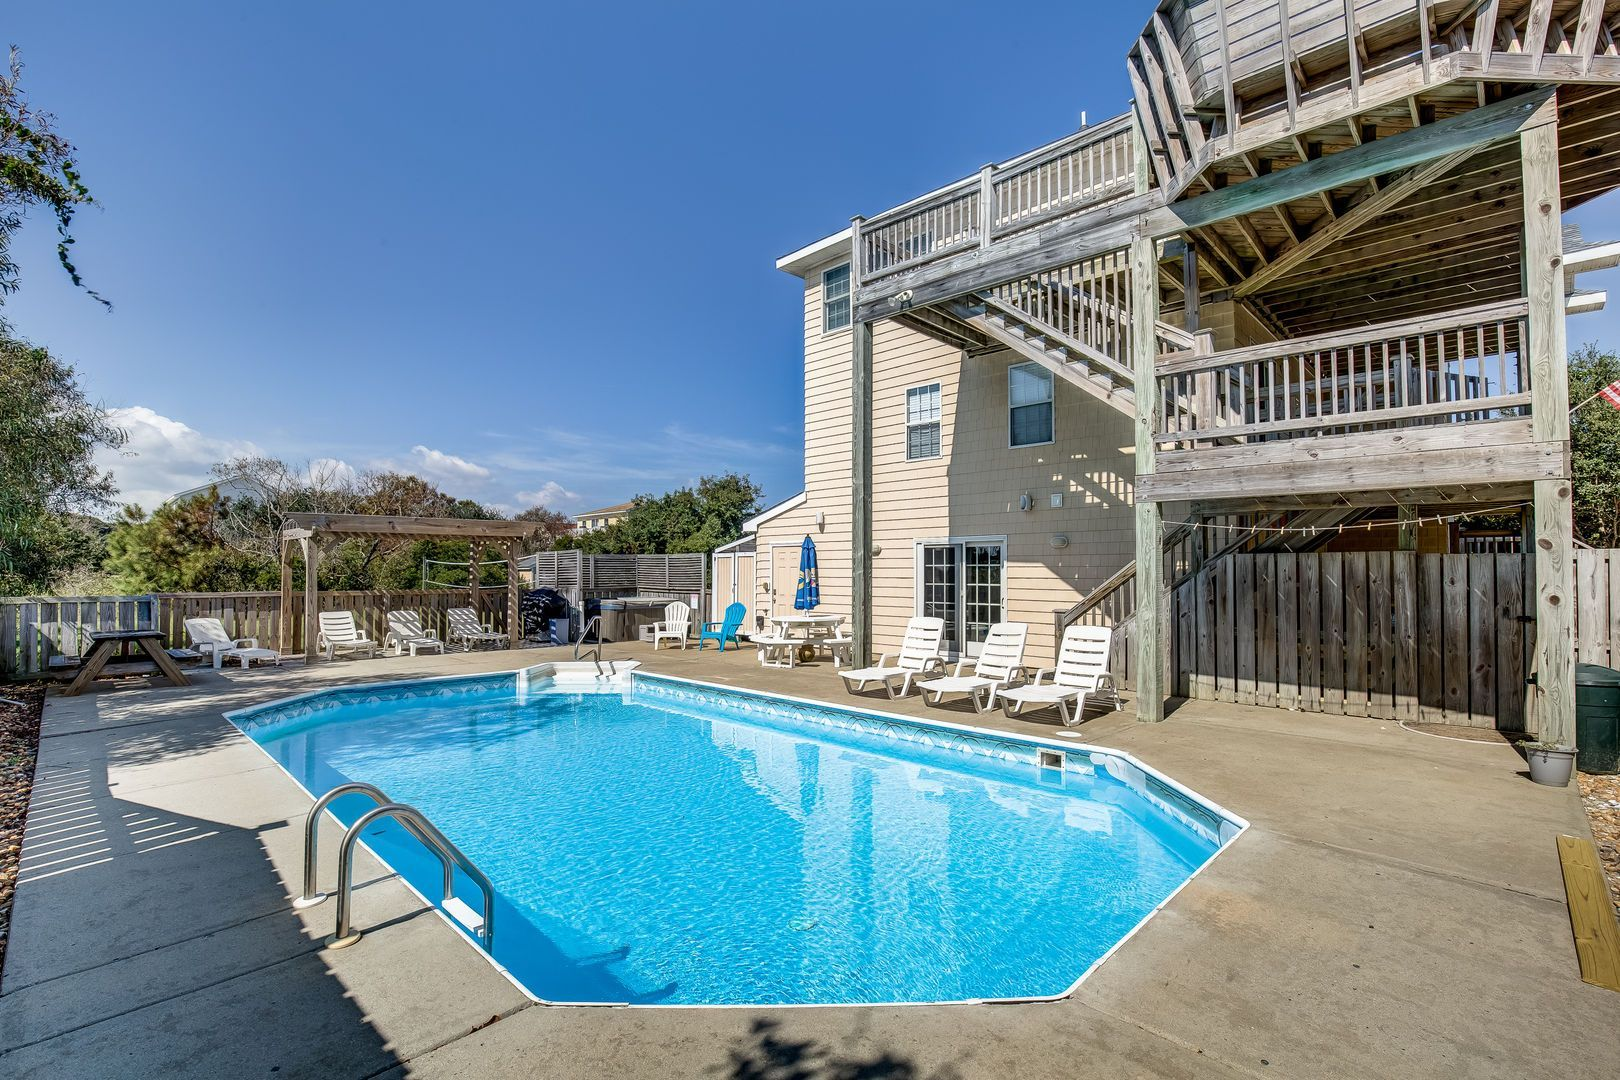 Harsimus Cove 7 Bedrooms 6 1 Bathrooms 770 Ft From The Beach Rates From 1 775 To 6 Vacation Rental Outer Banks Vacation Rentals Vacation Rental Sites